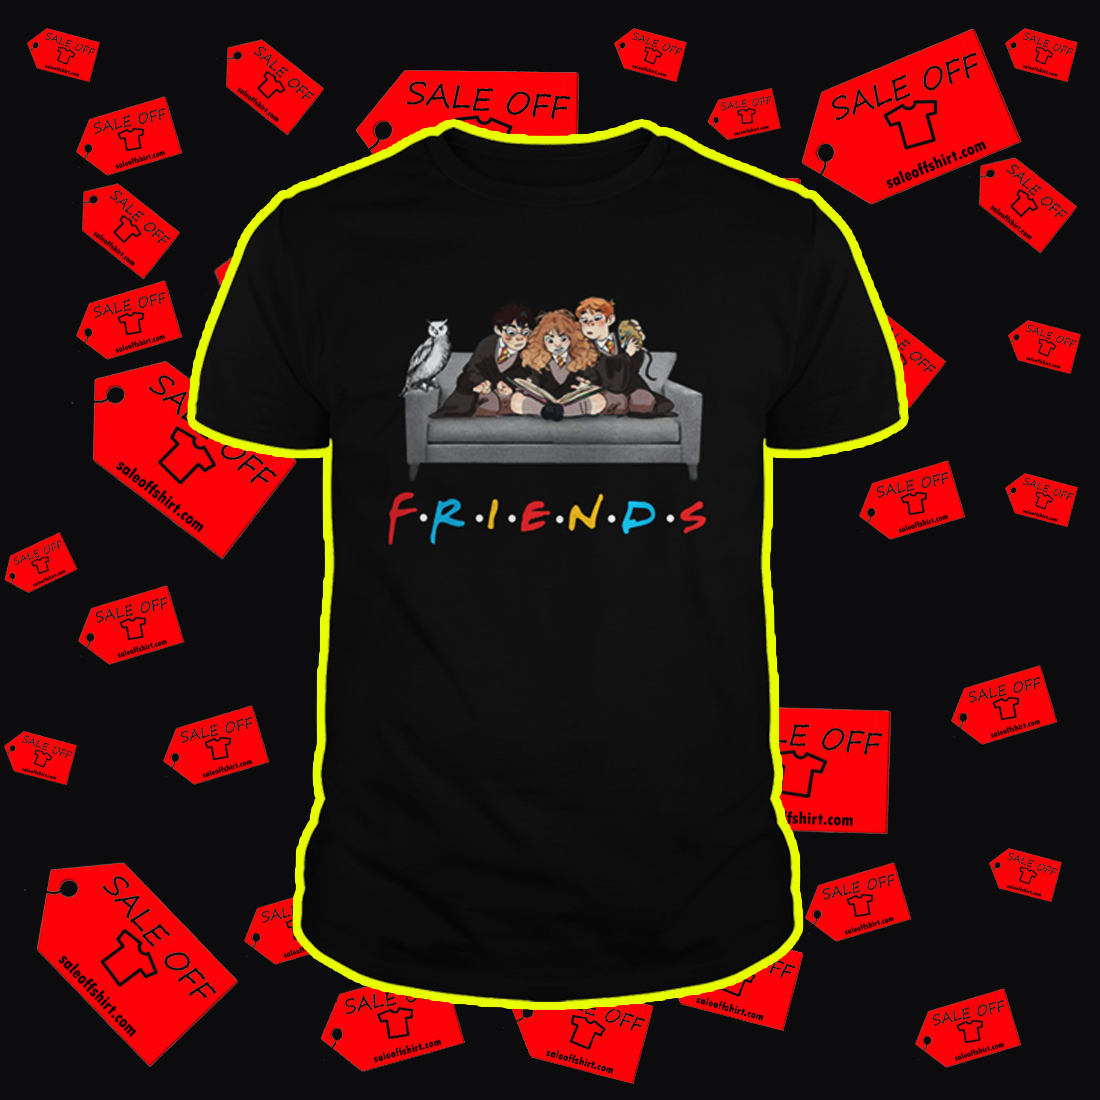 Harry Potter friends TV show shirt - style 2